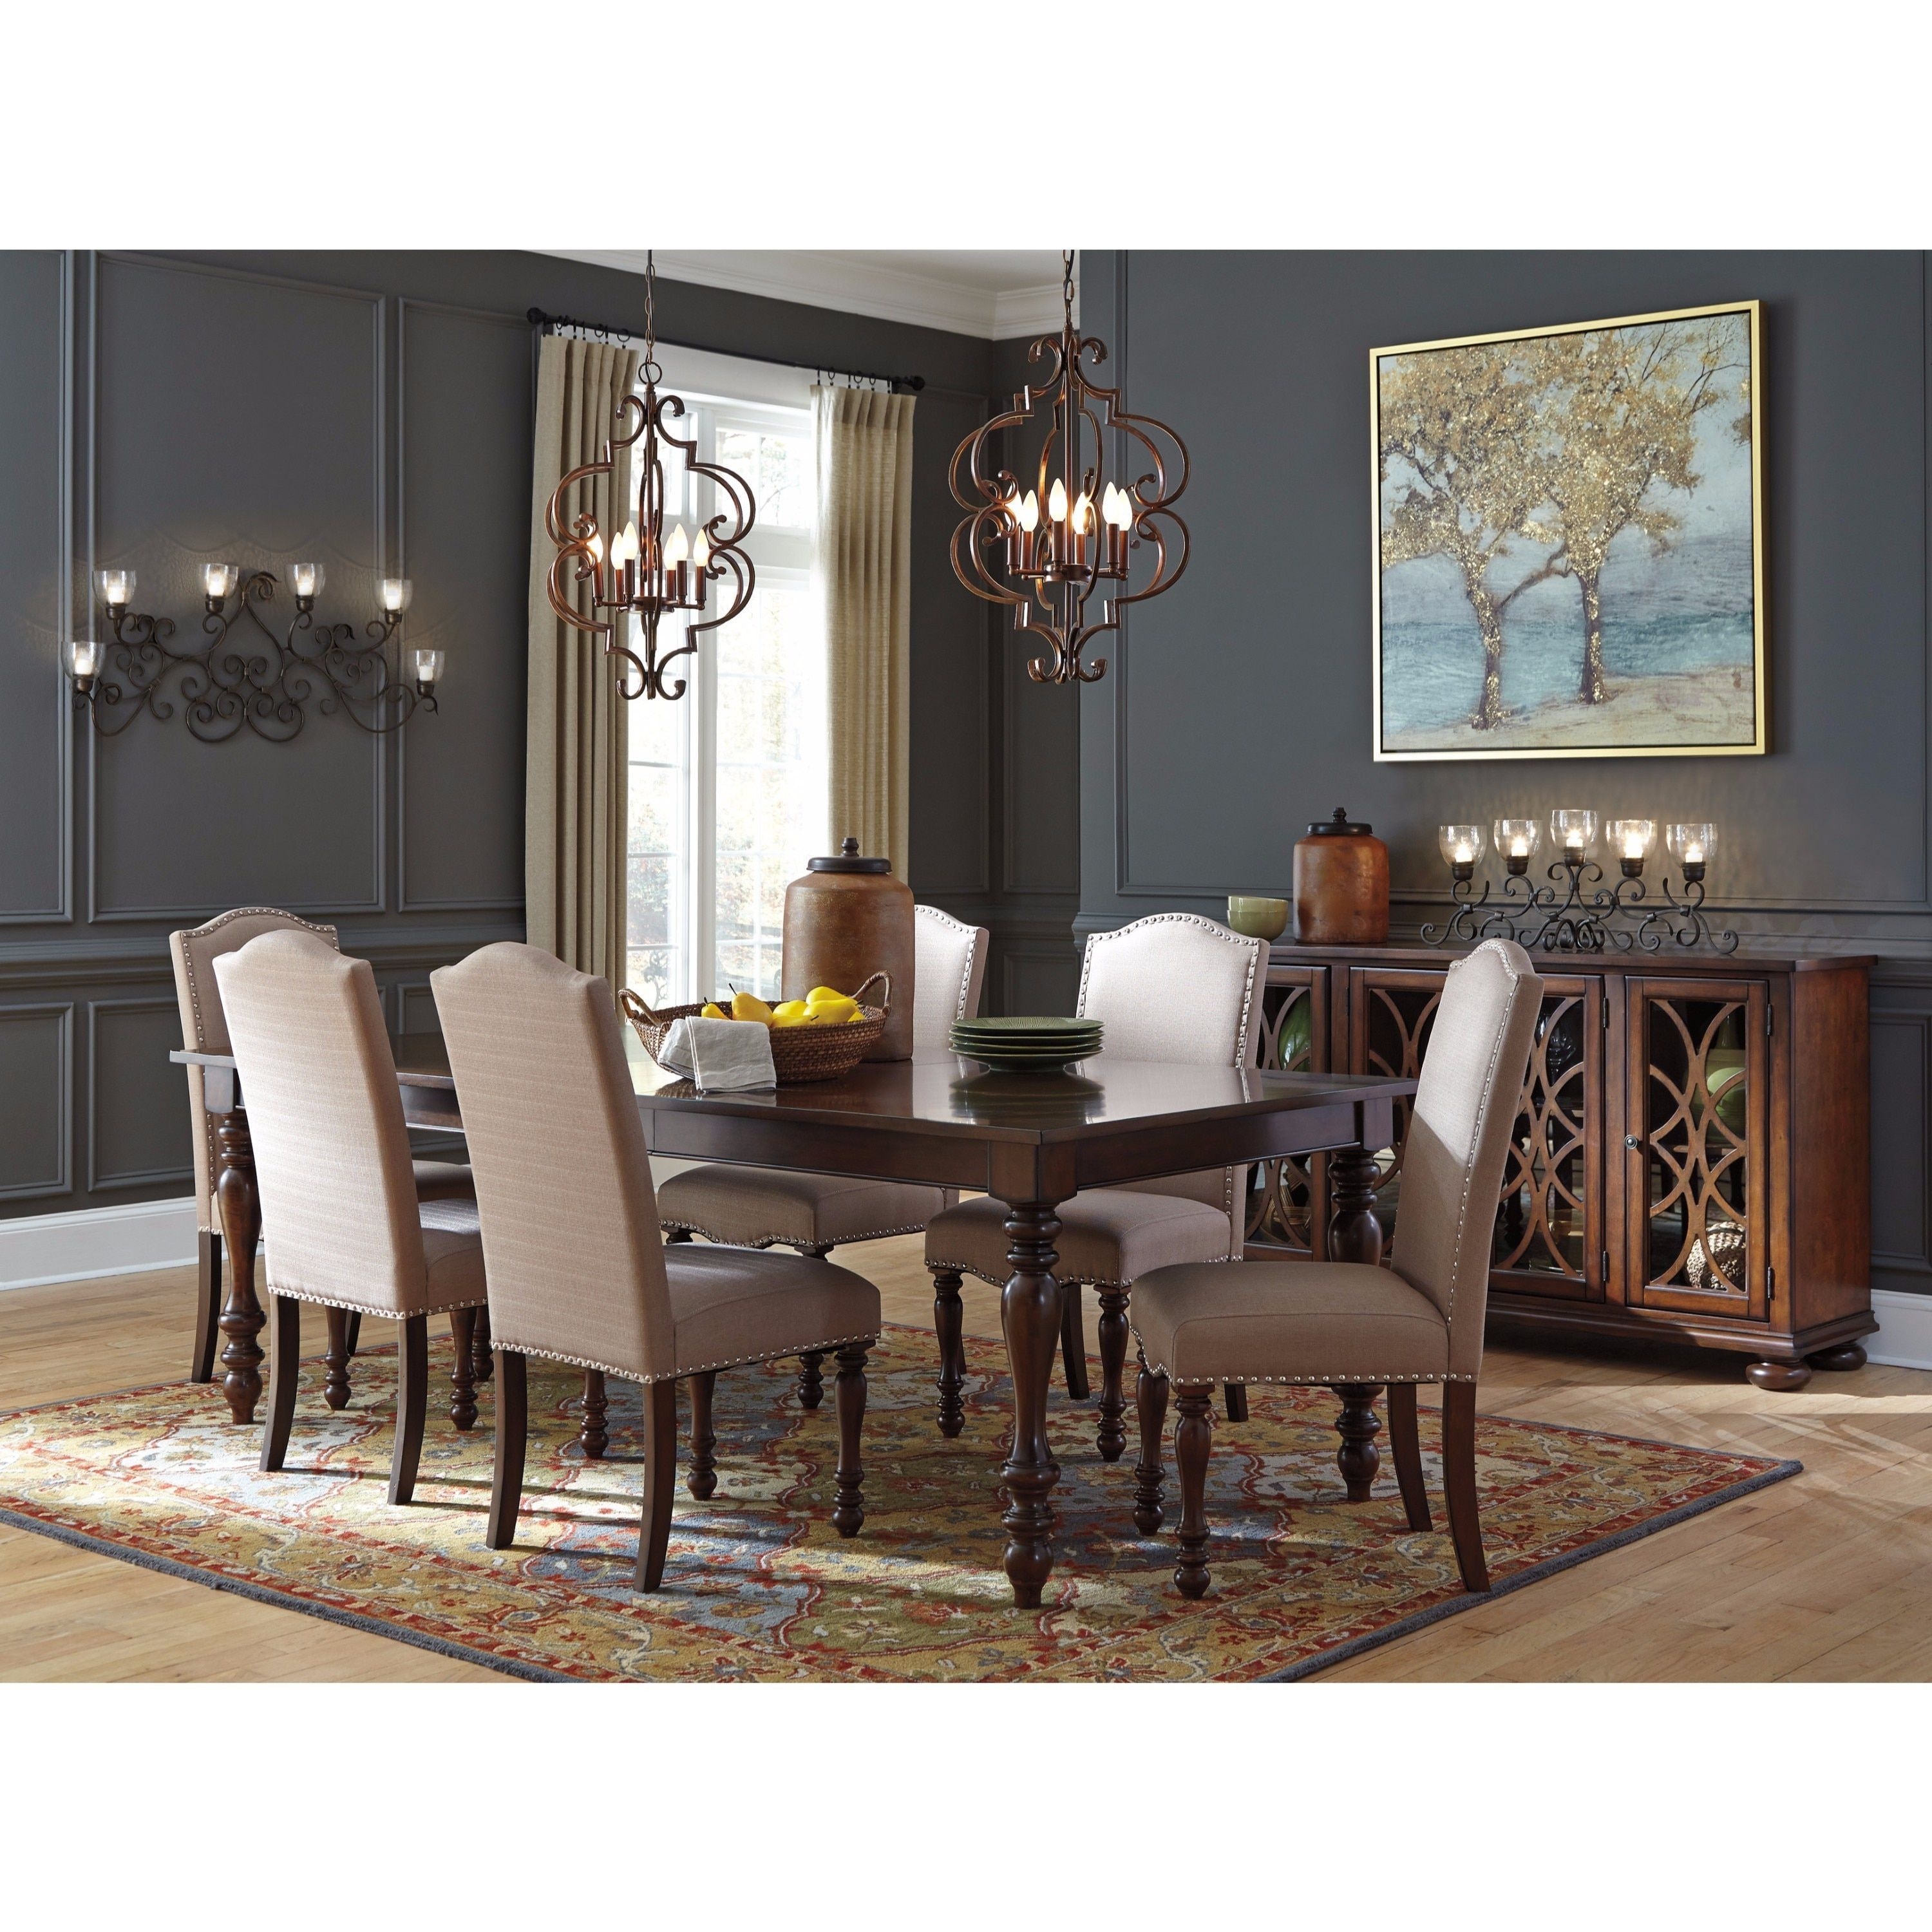 Signature Design By Ashley Baxenburg Brown Counter Height 5 Piece Dining Set  (Dining Set), Size 5 Piece Sets | Products | Pinterest | Dining Sets